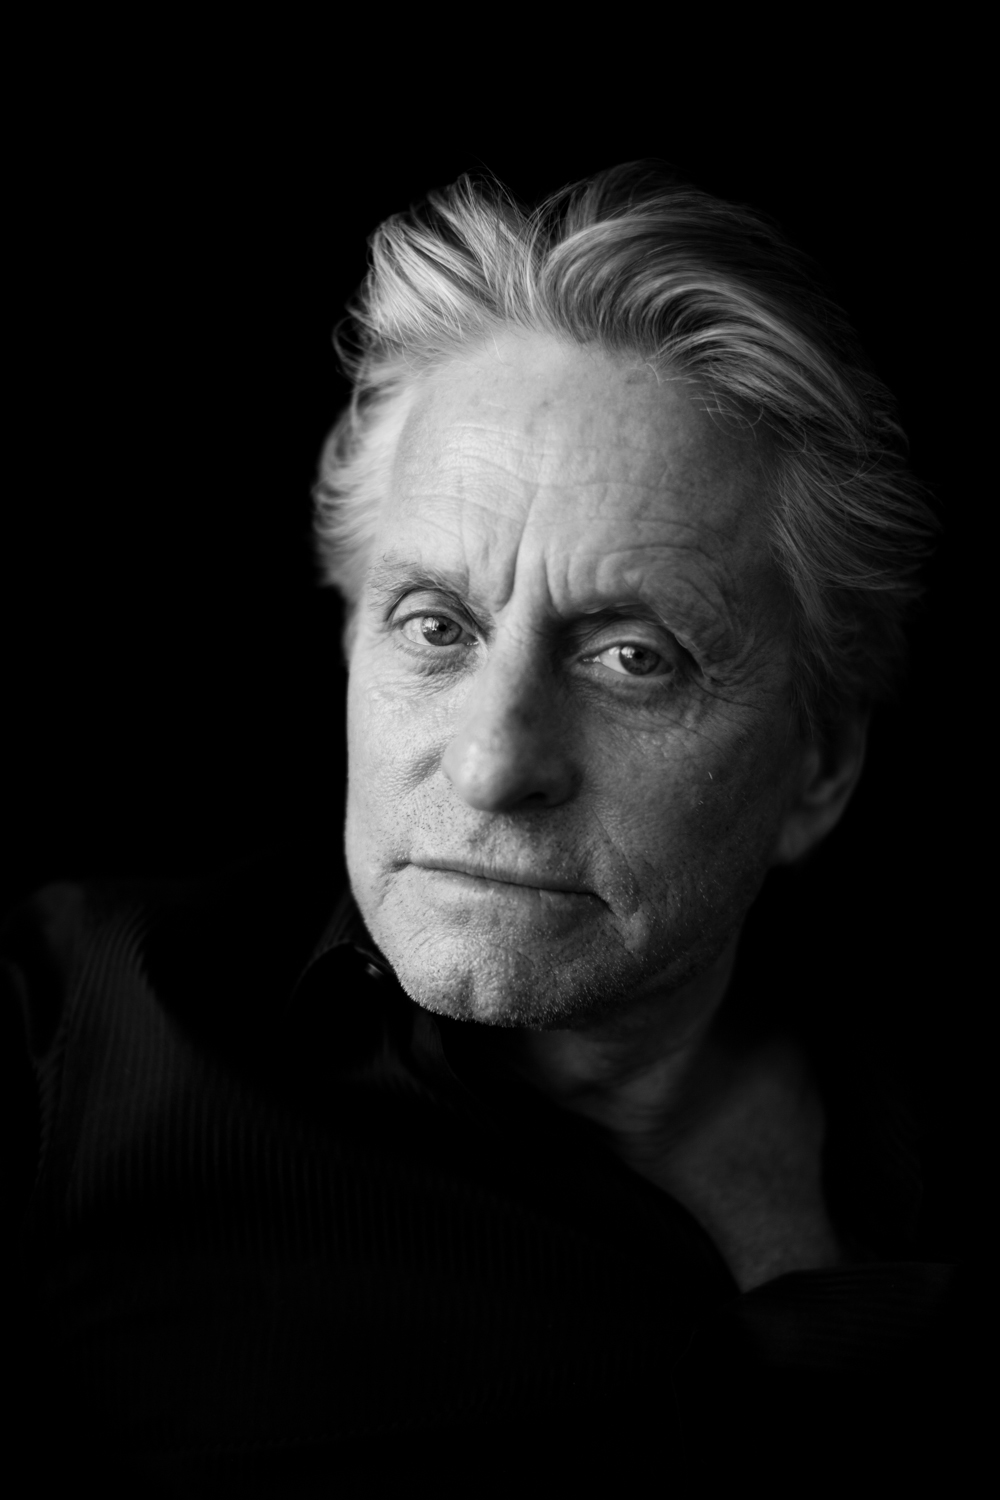 johnmidgley-michaeldouglas-4.jpg